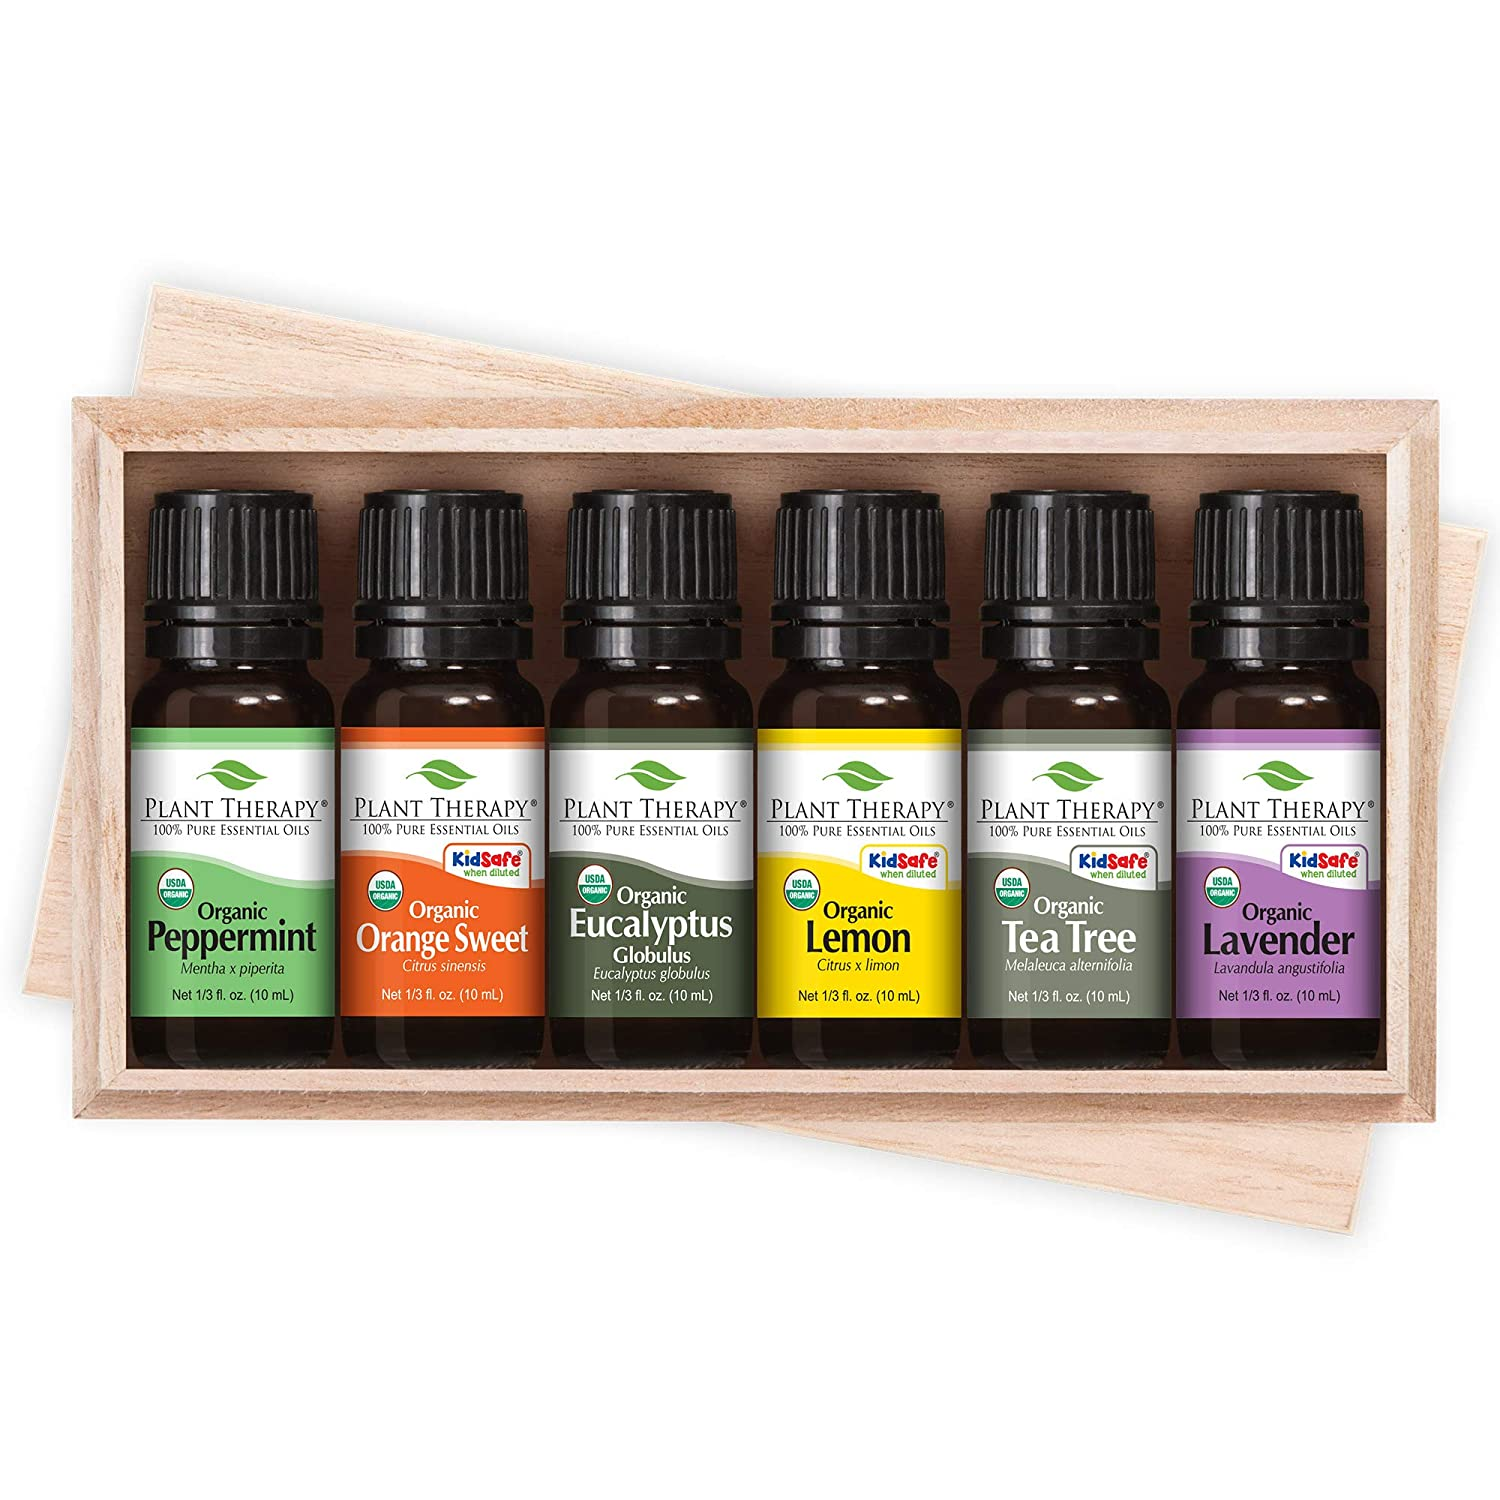 Plant Therapy Top 6 Organic Essential Oil Set - Lavender, Peppermint, Eucalyptus, Lemon, Tea Tree, In A Wooden Box 100% Pure, USDA Organic, Natural Aromatherapy, Therapeutic Grade 10 mL (1/3 oz)